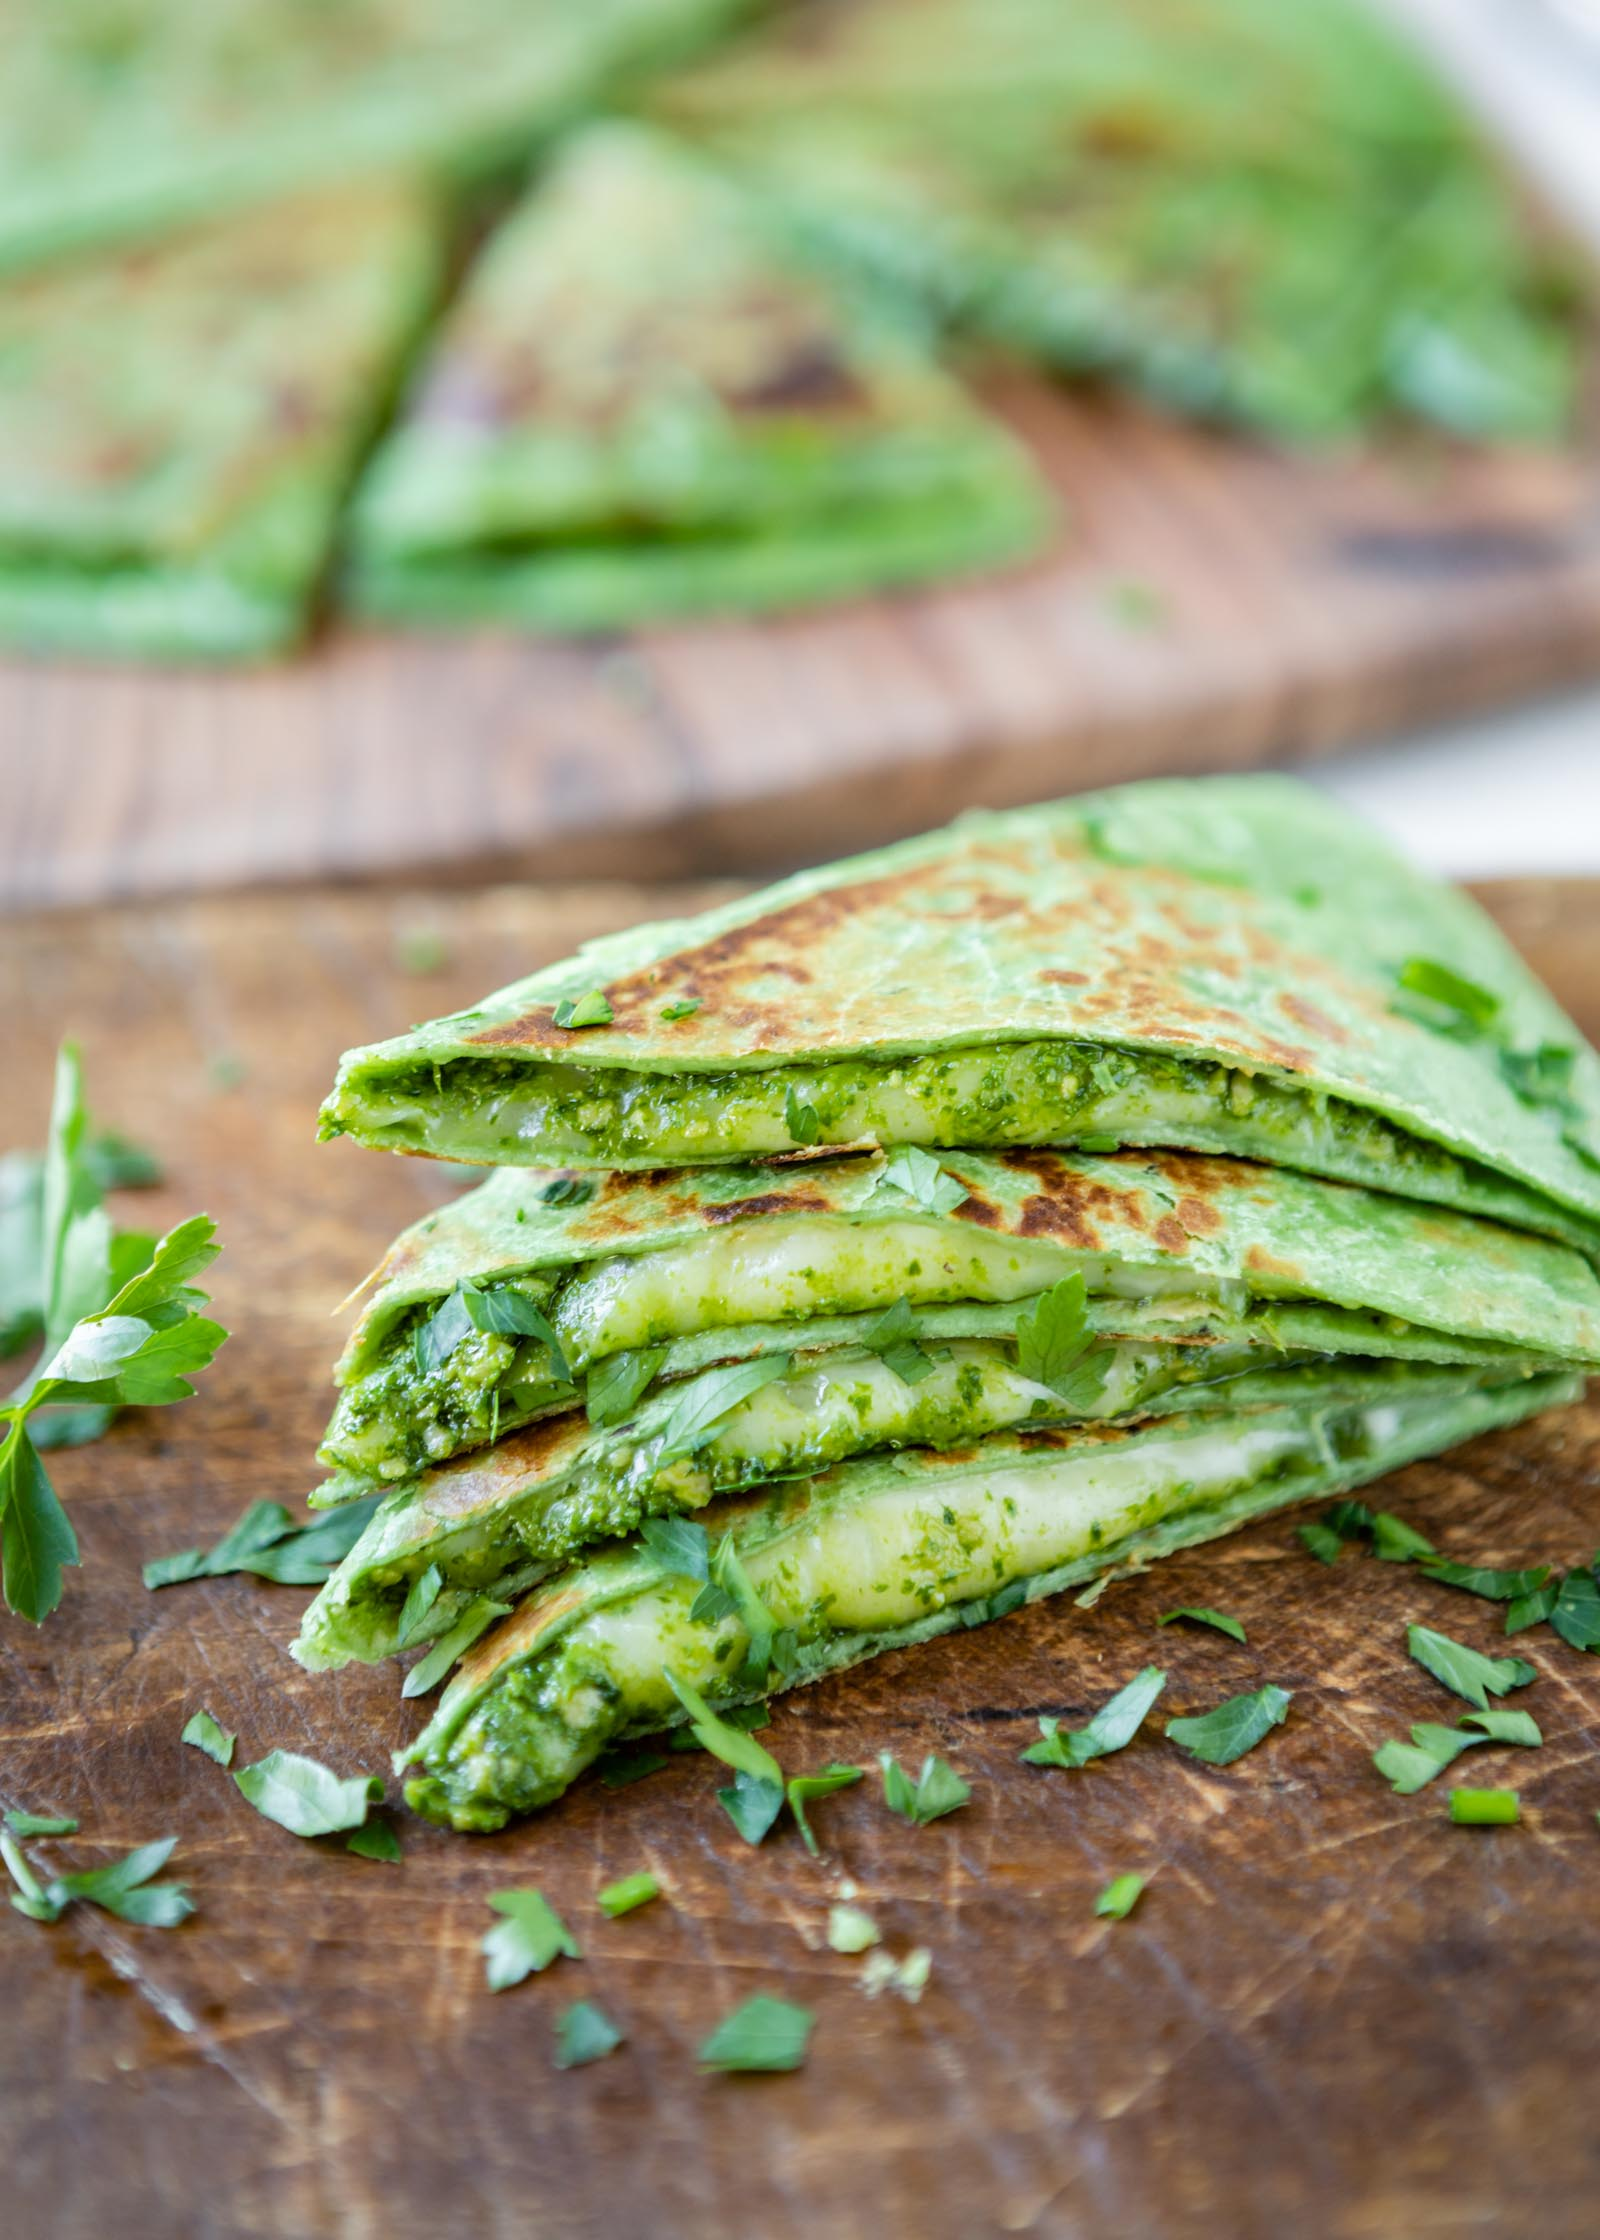 9 Vegetarian Quesadilla Recipes to Whip Up This Week